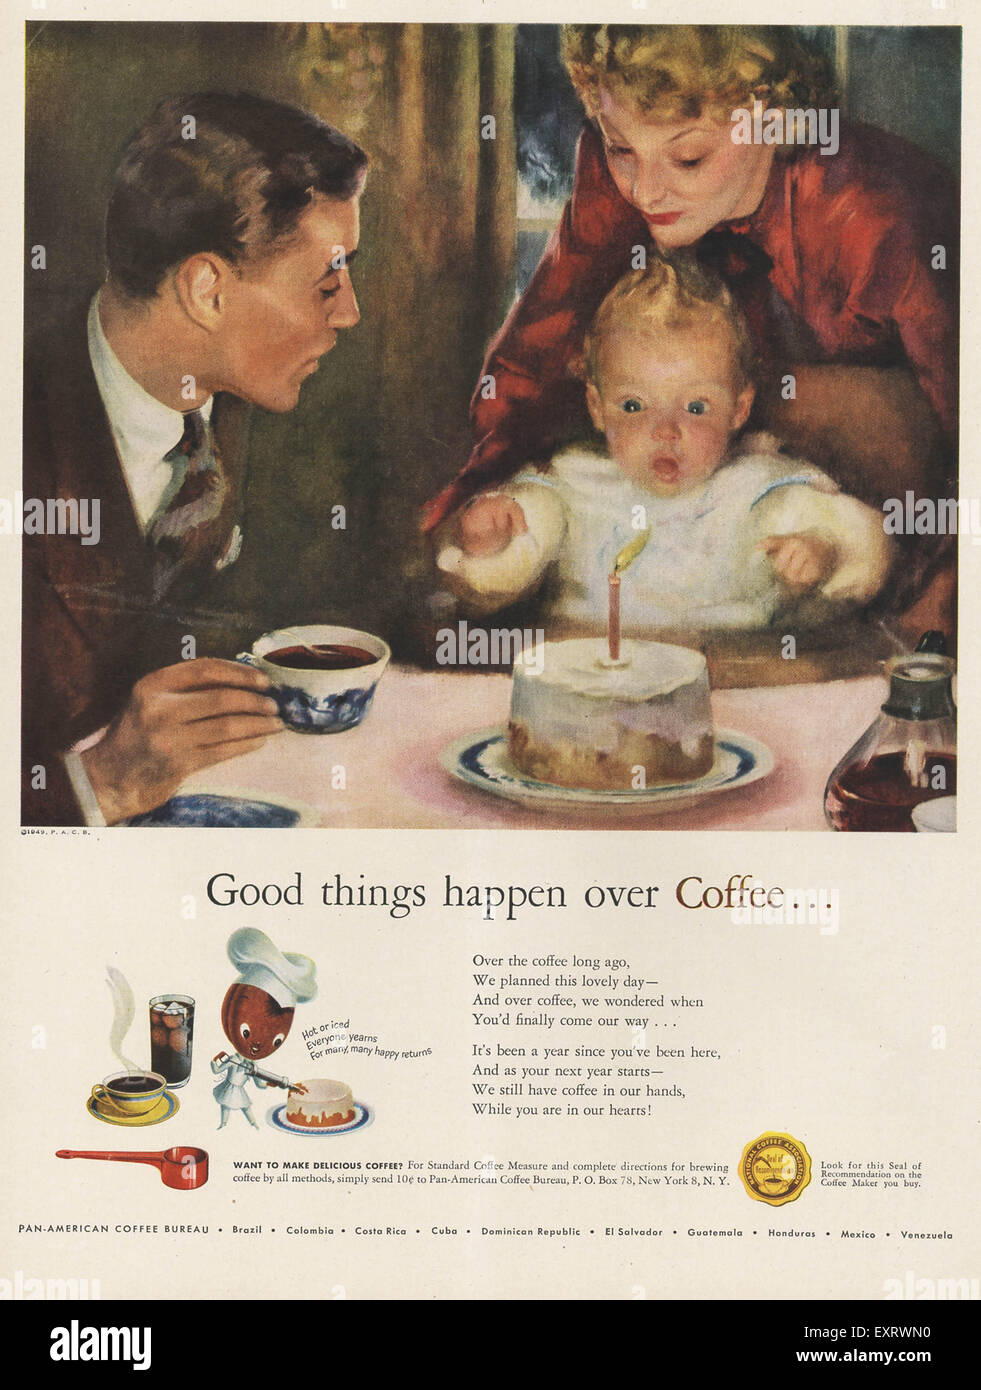 Coffee 1940s High Resolution Stock Photography And Images Alamy